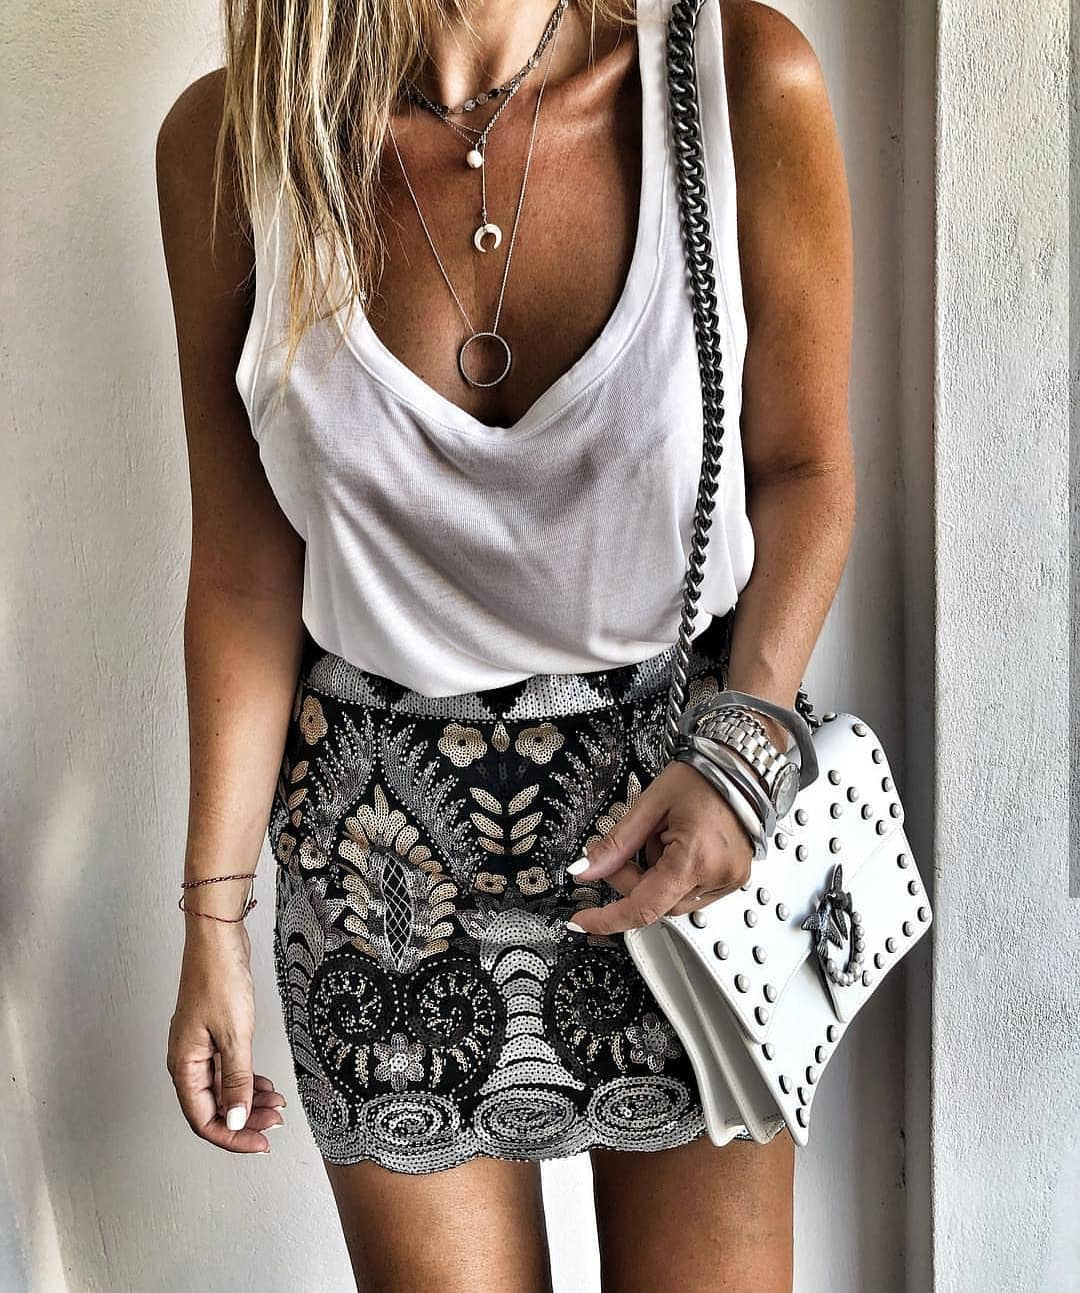 White Tank Top And Floral Mini Skirt For Summer 2019